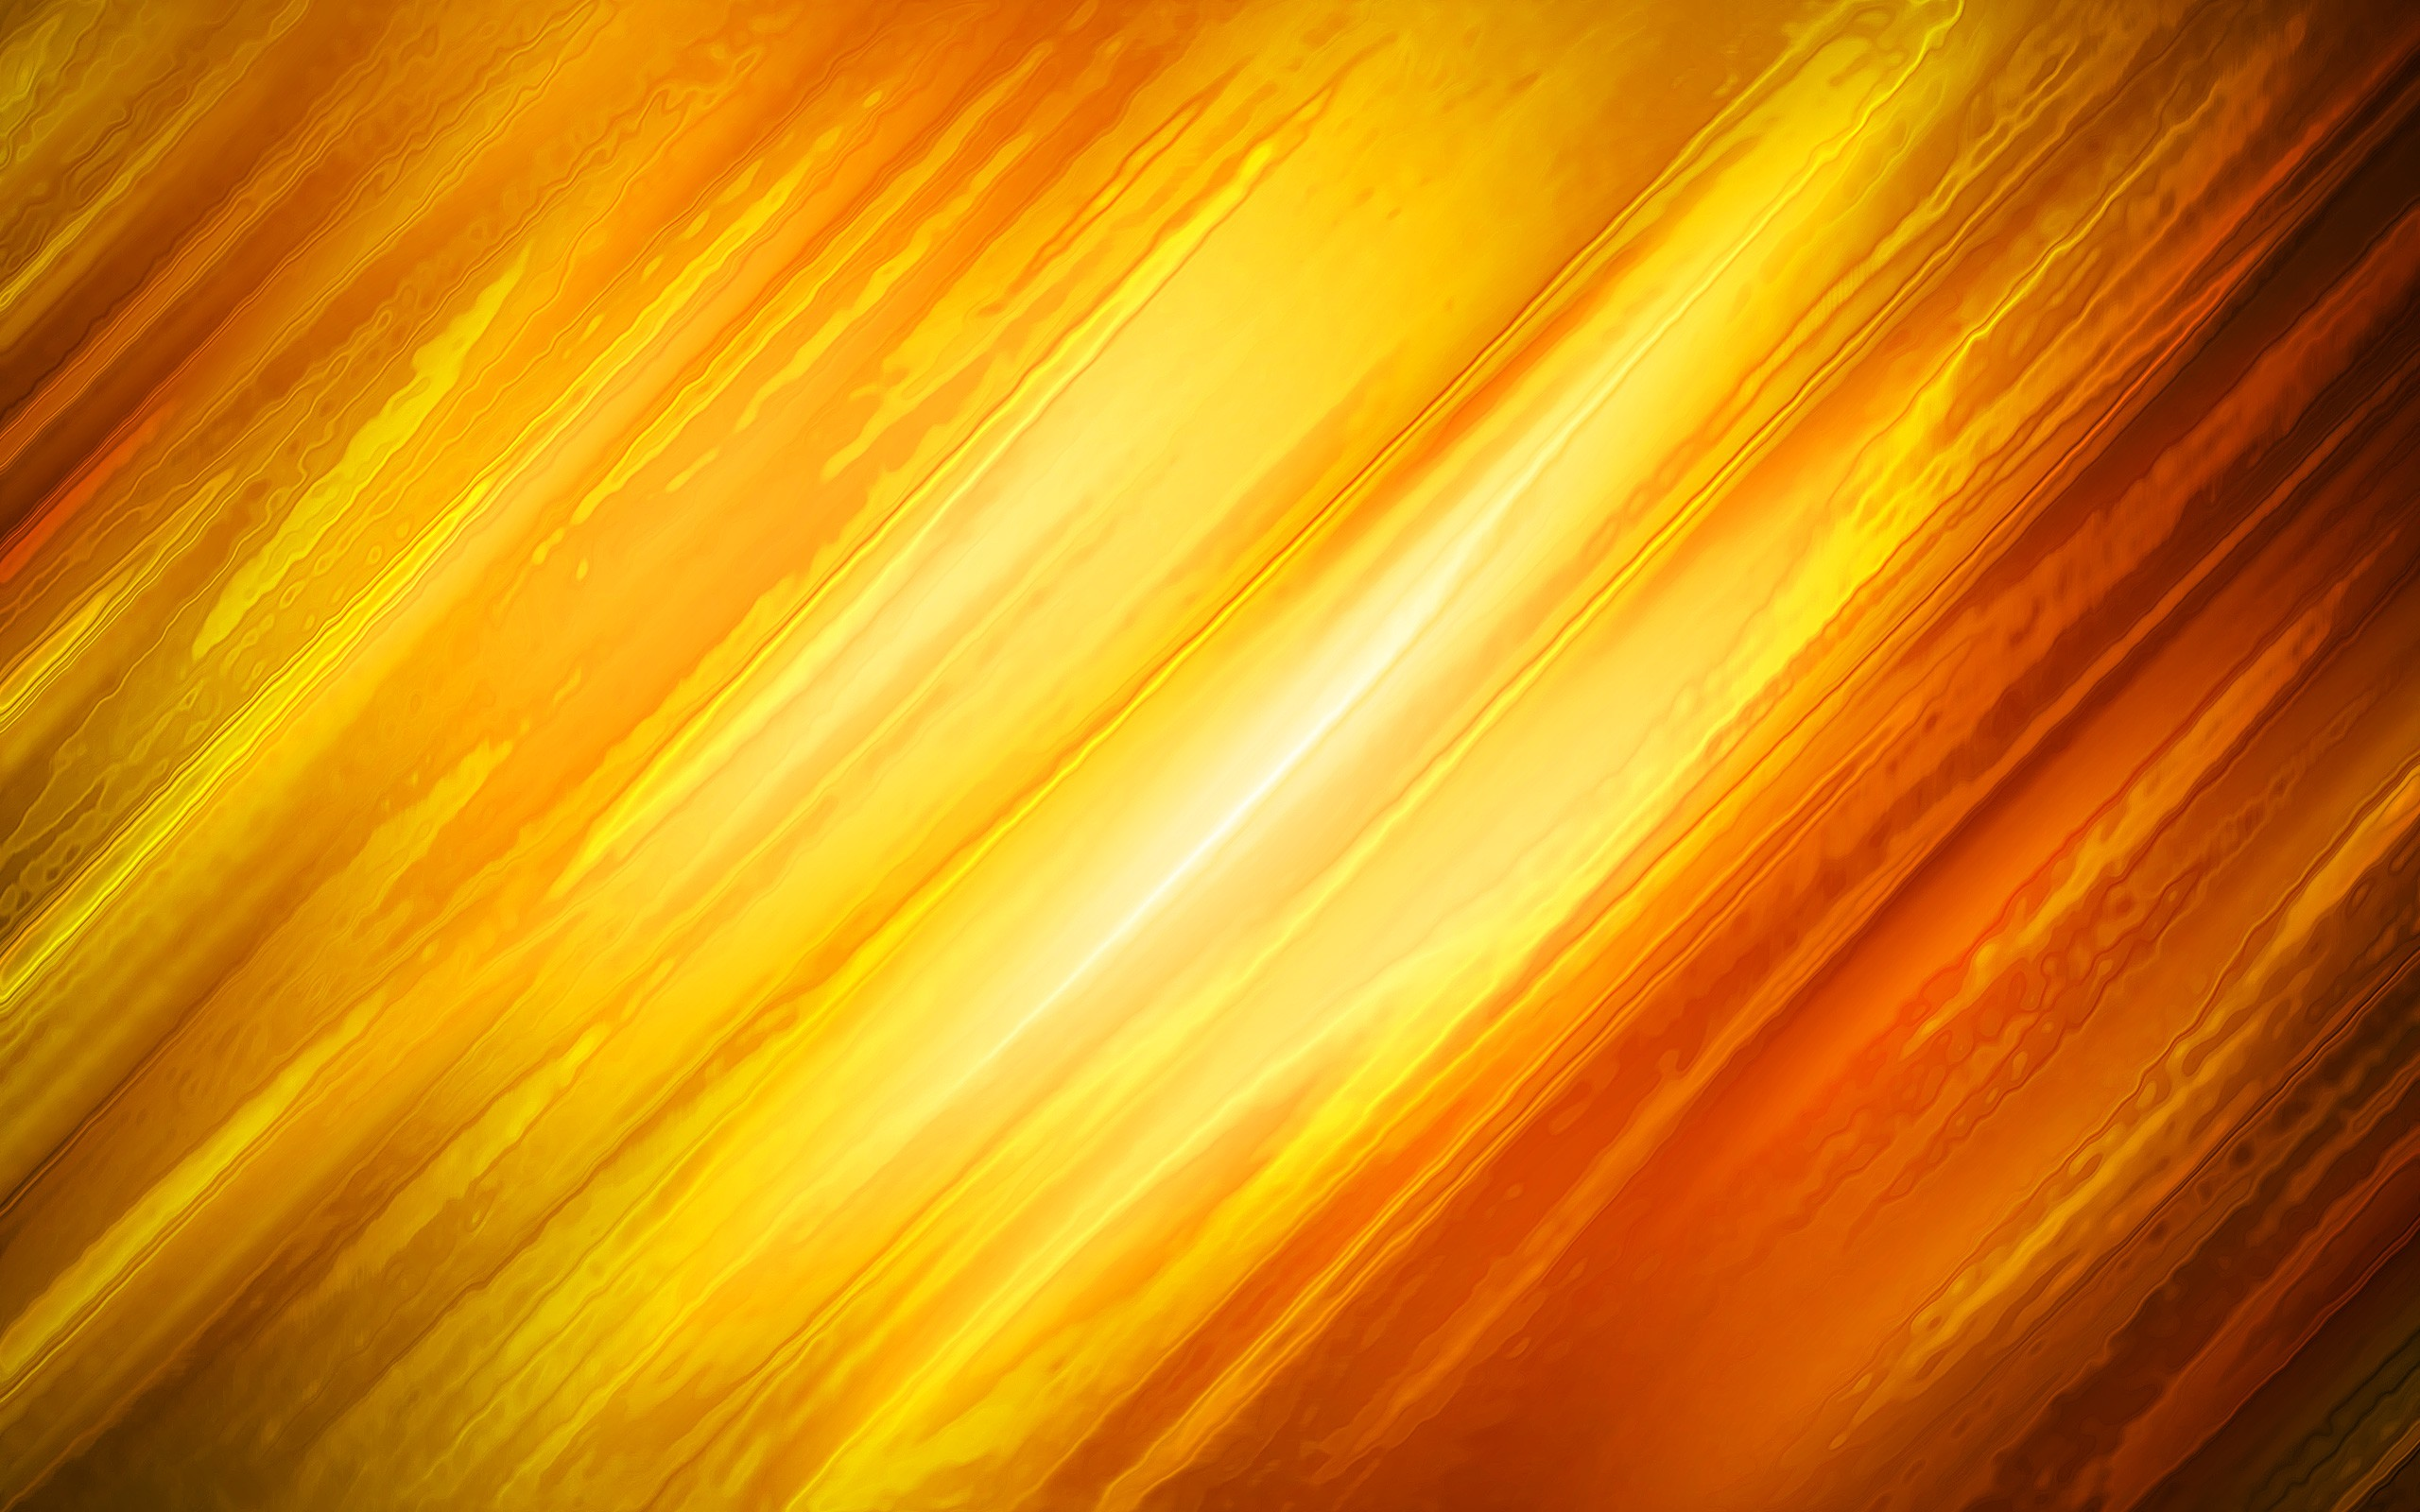 Night light wallpapers night light stock photos next abstract yellow and orange background thecheapjerseys